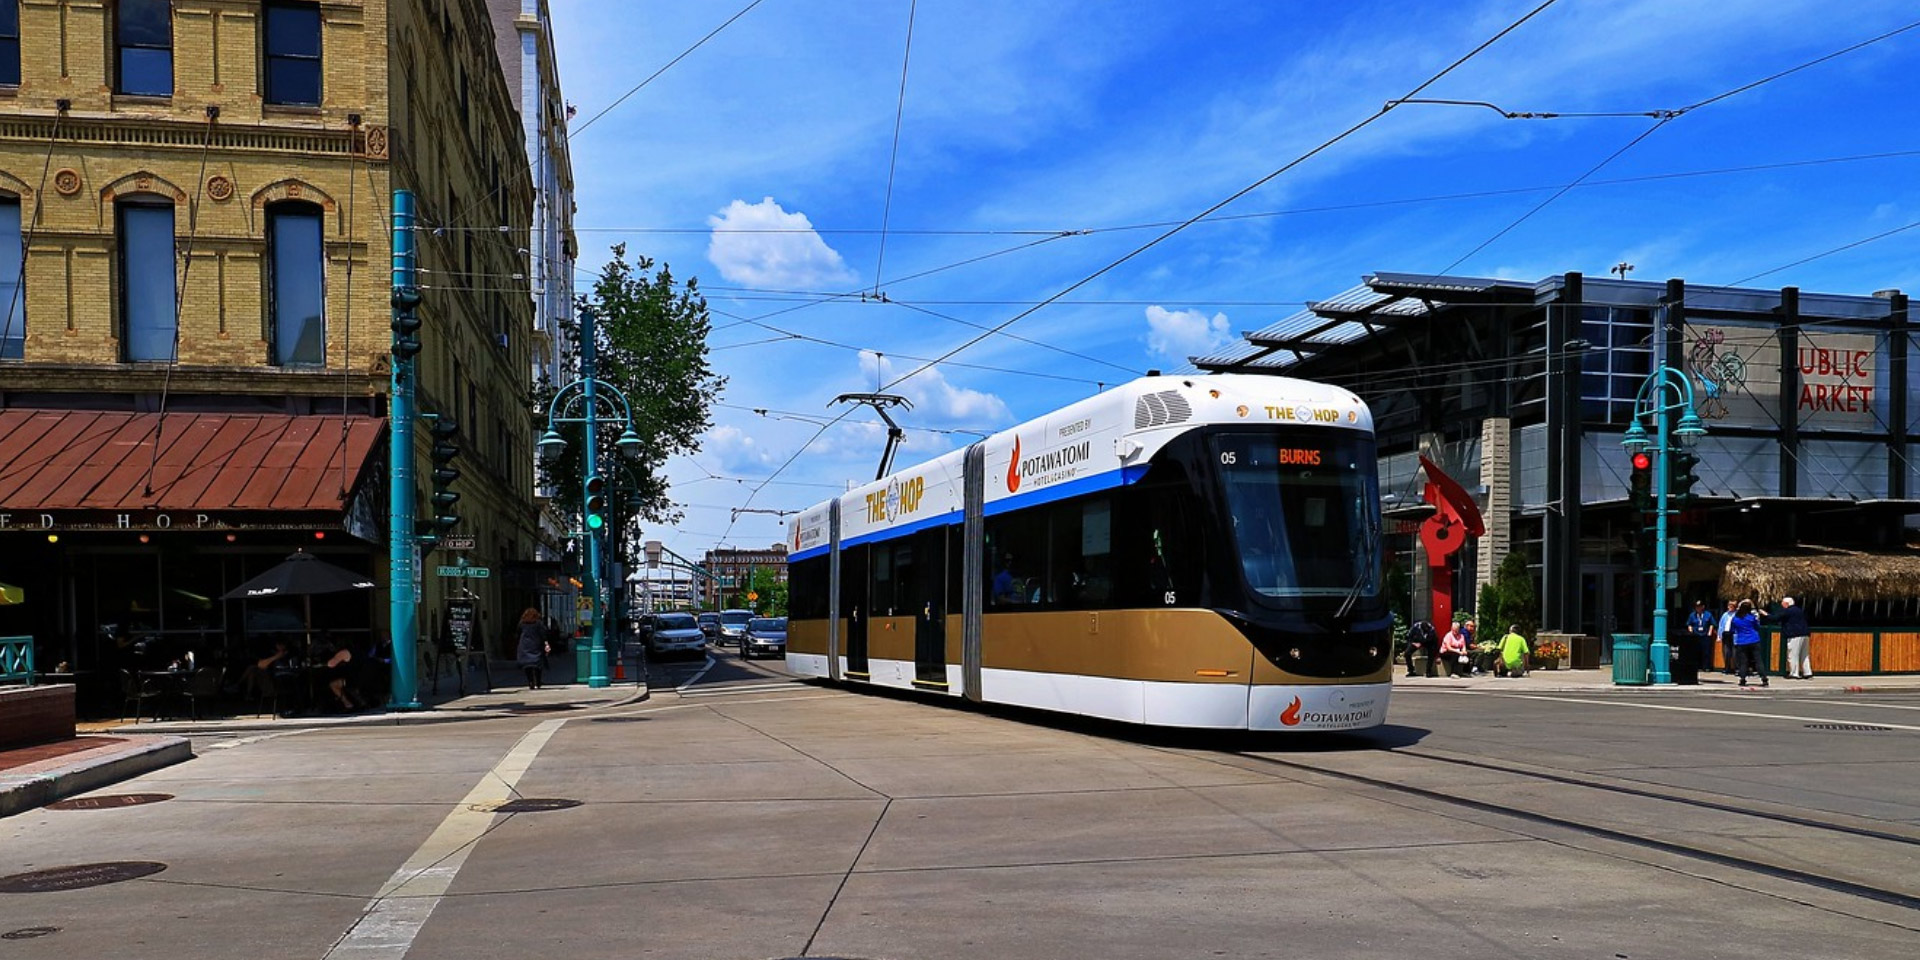 Streetcar with overhead wires